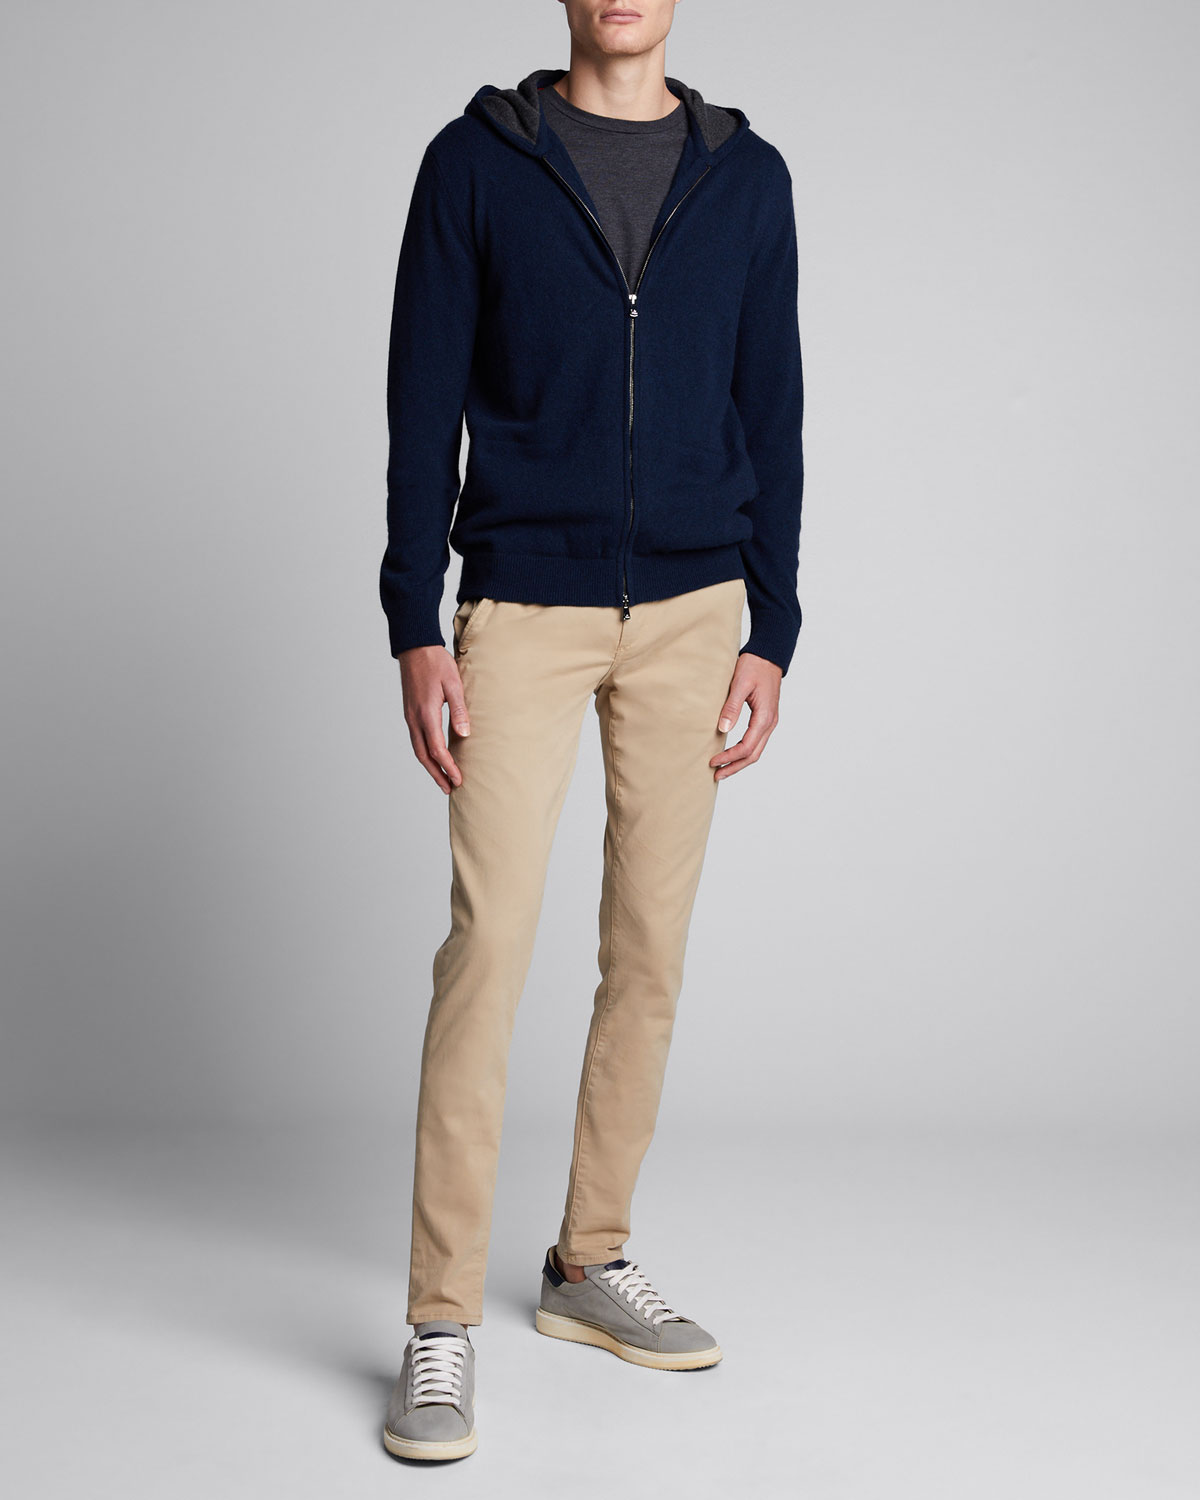 Isaia Tops MEN'S TWO-TONE CASHMERE ZIP-FRONT HOODIE